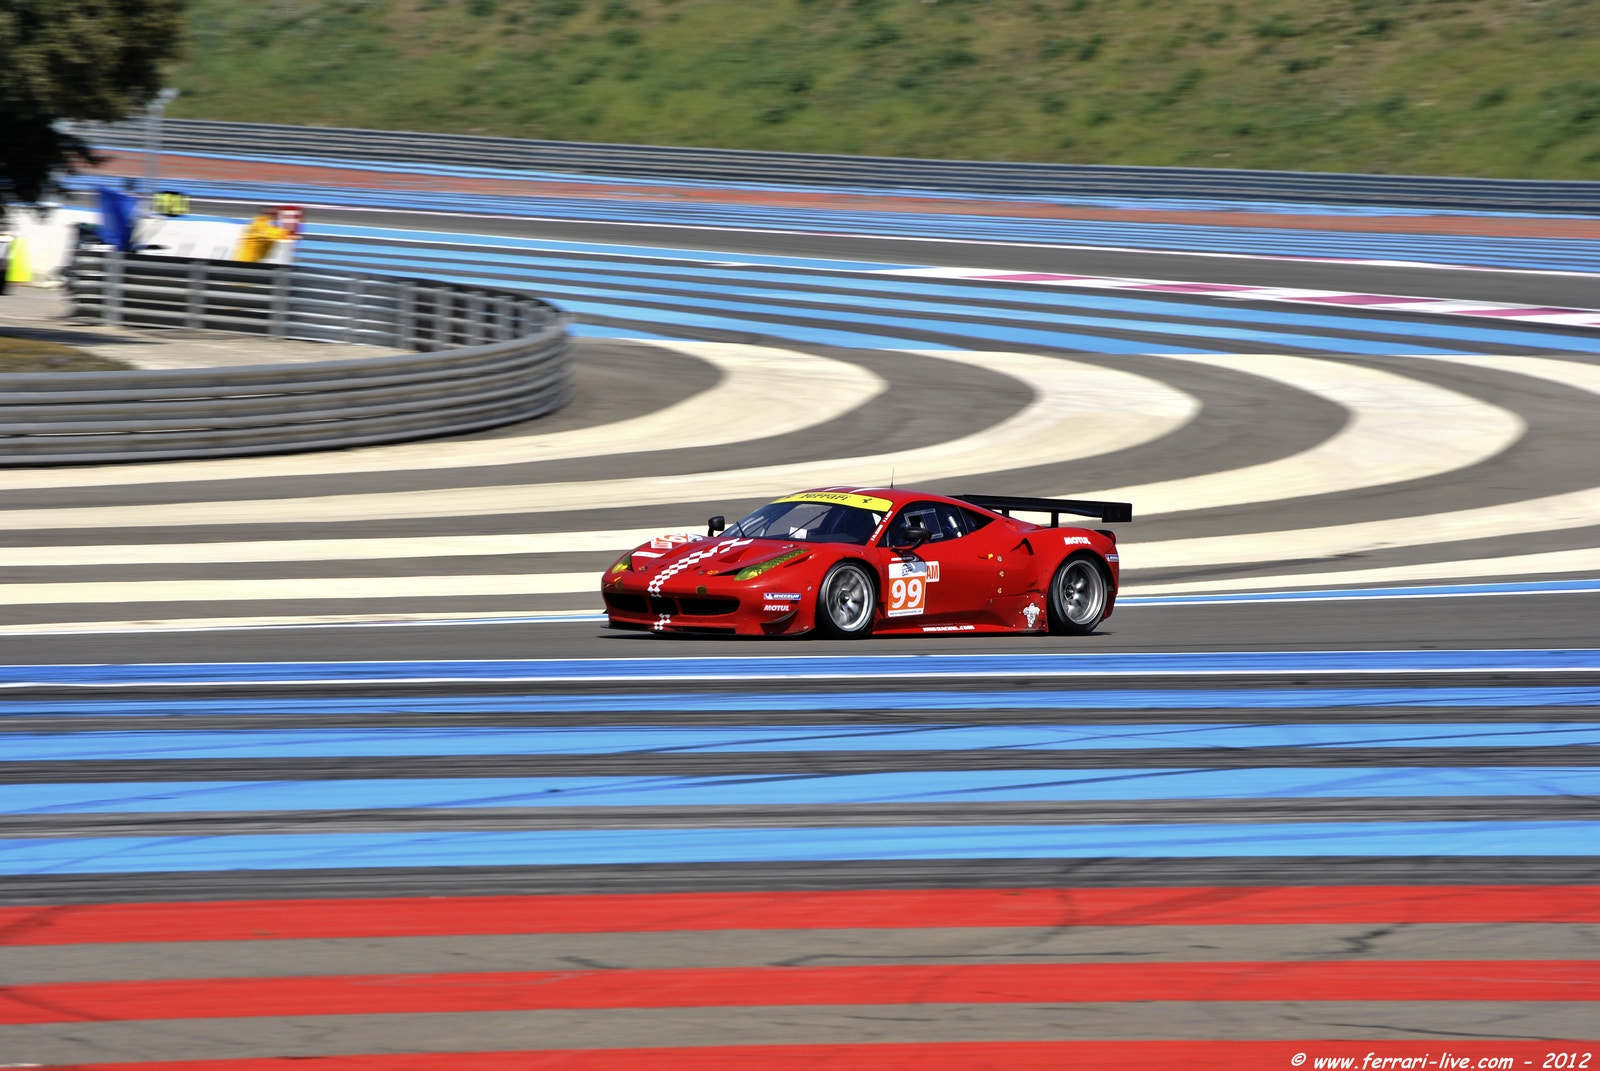 Photograph Ferrari 458 Italia GTE AM  by Ferrari-live @ Franck on 500px